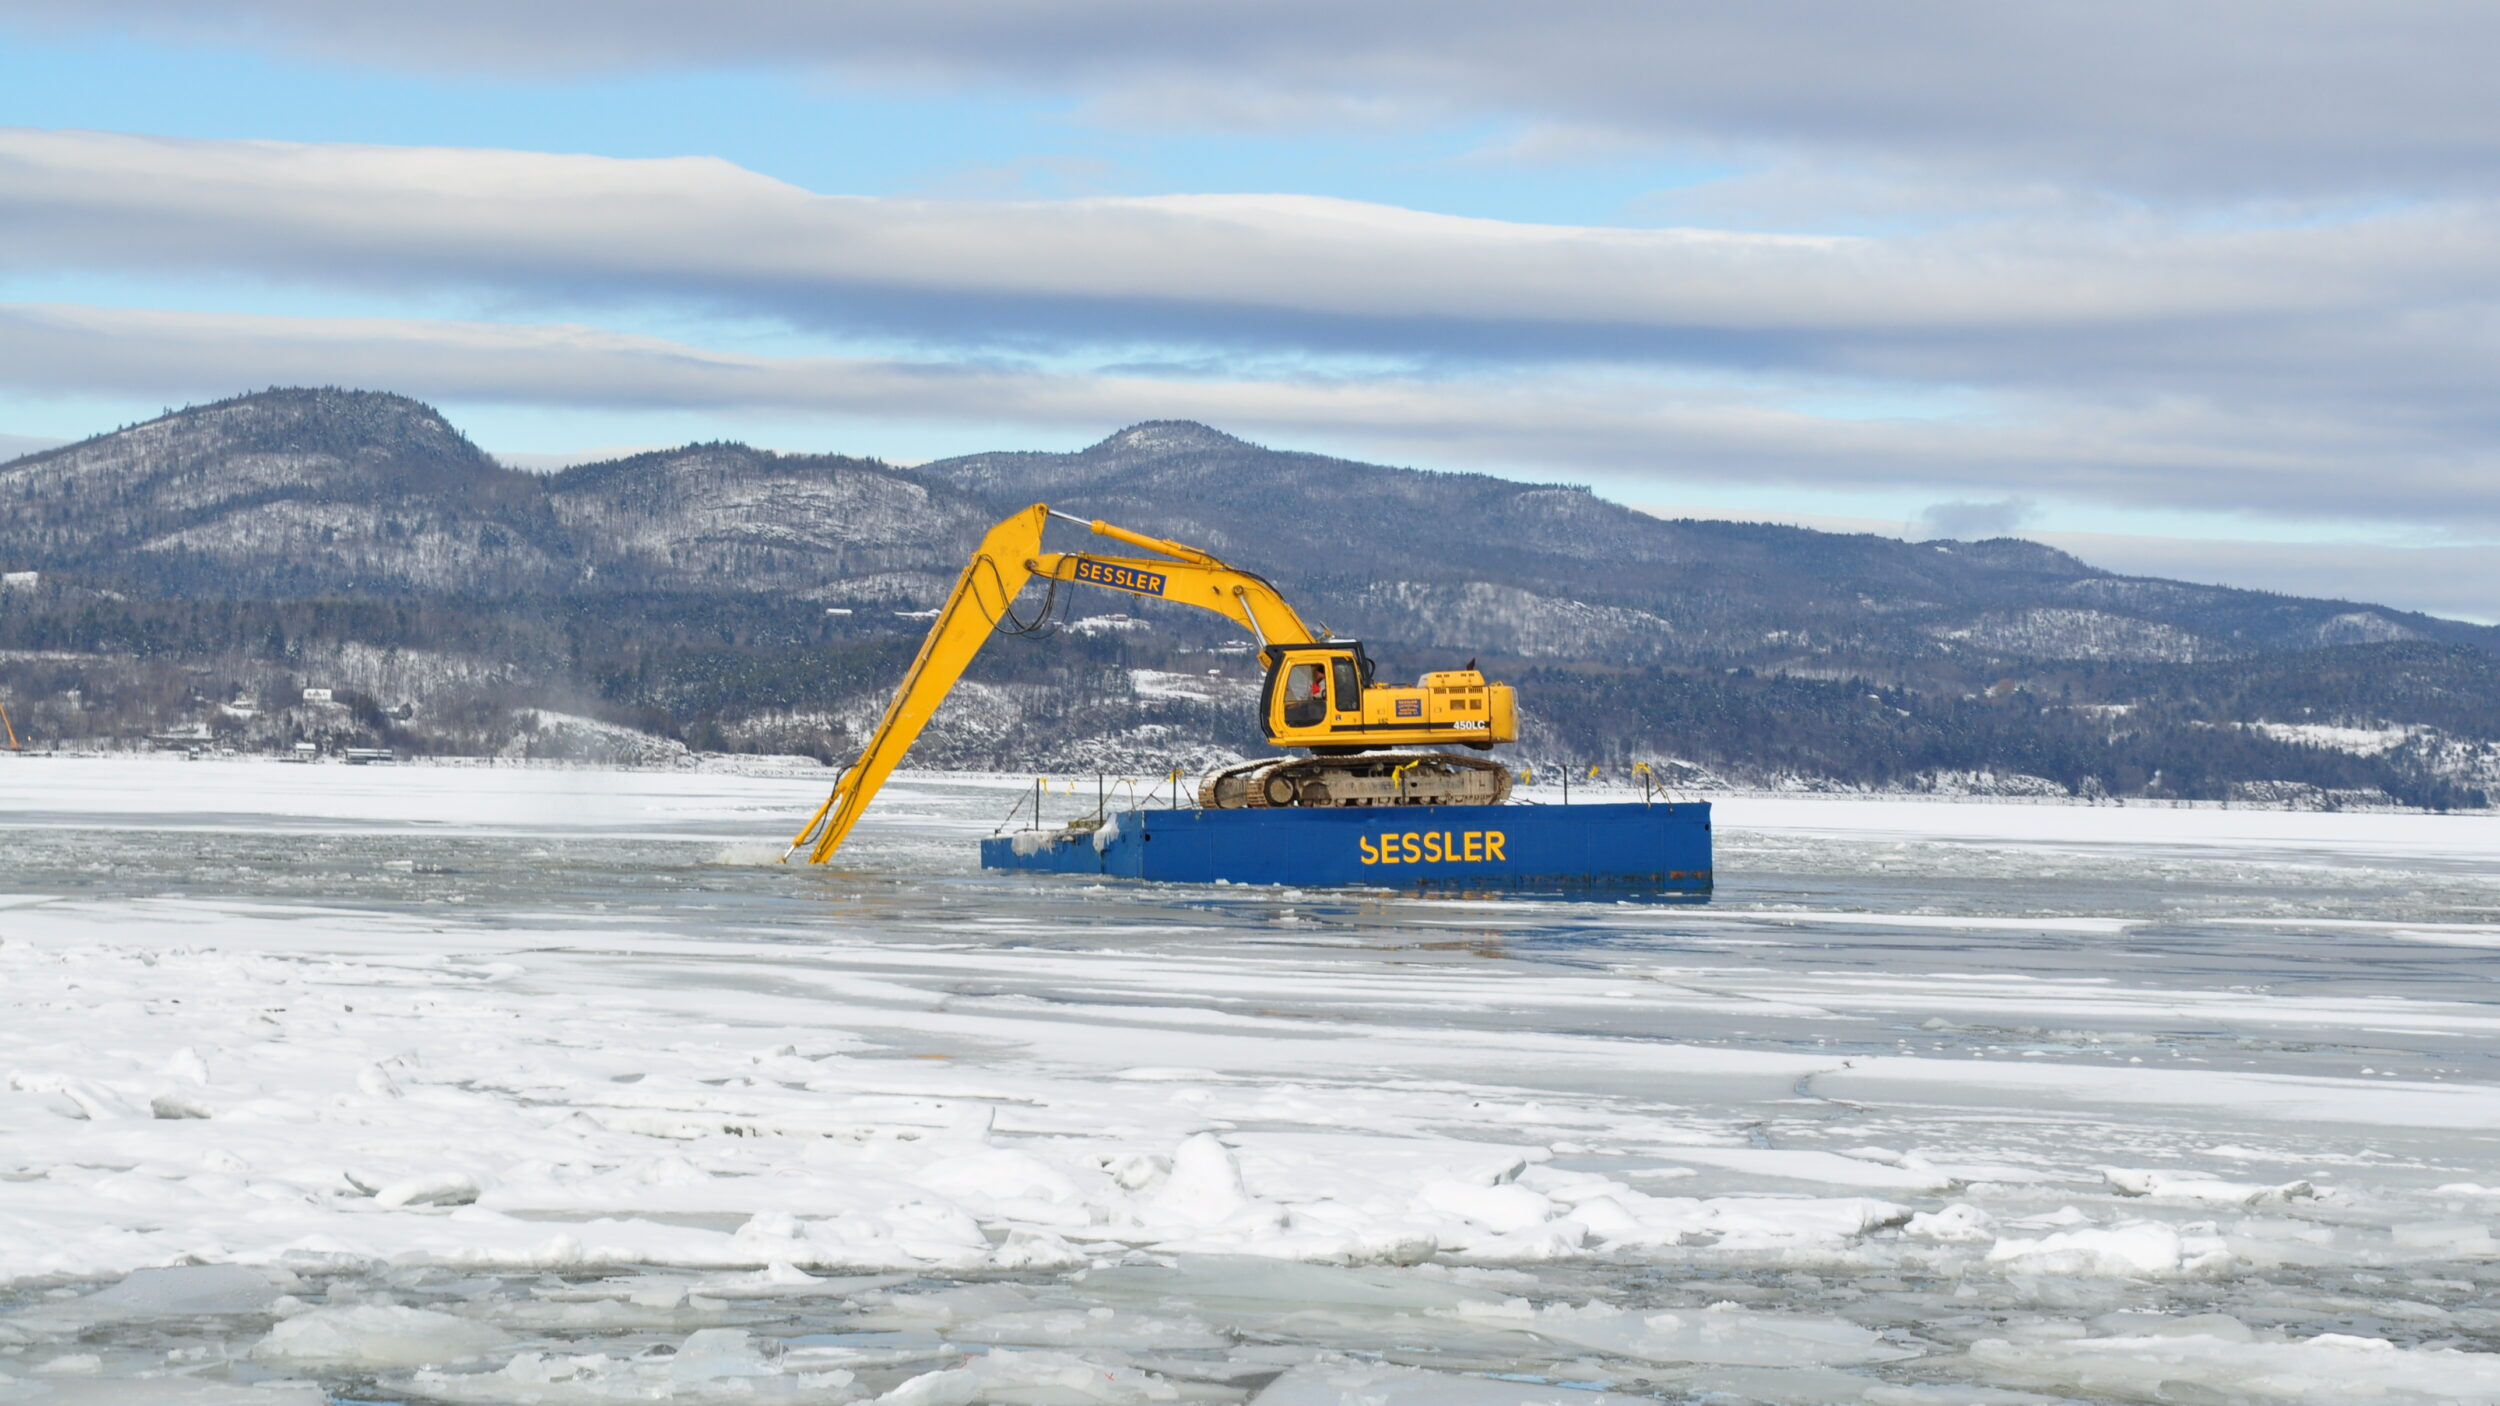 Crown point excavator on barge